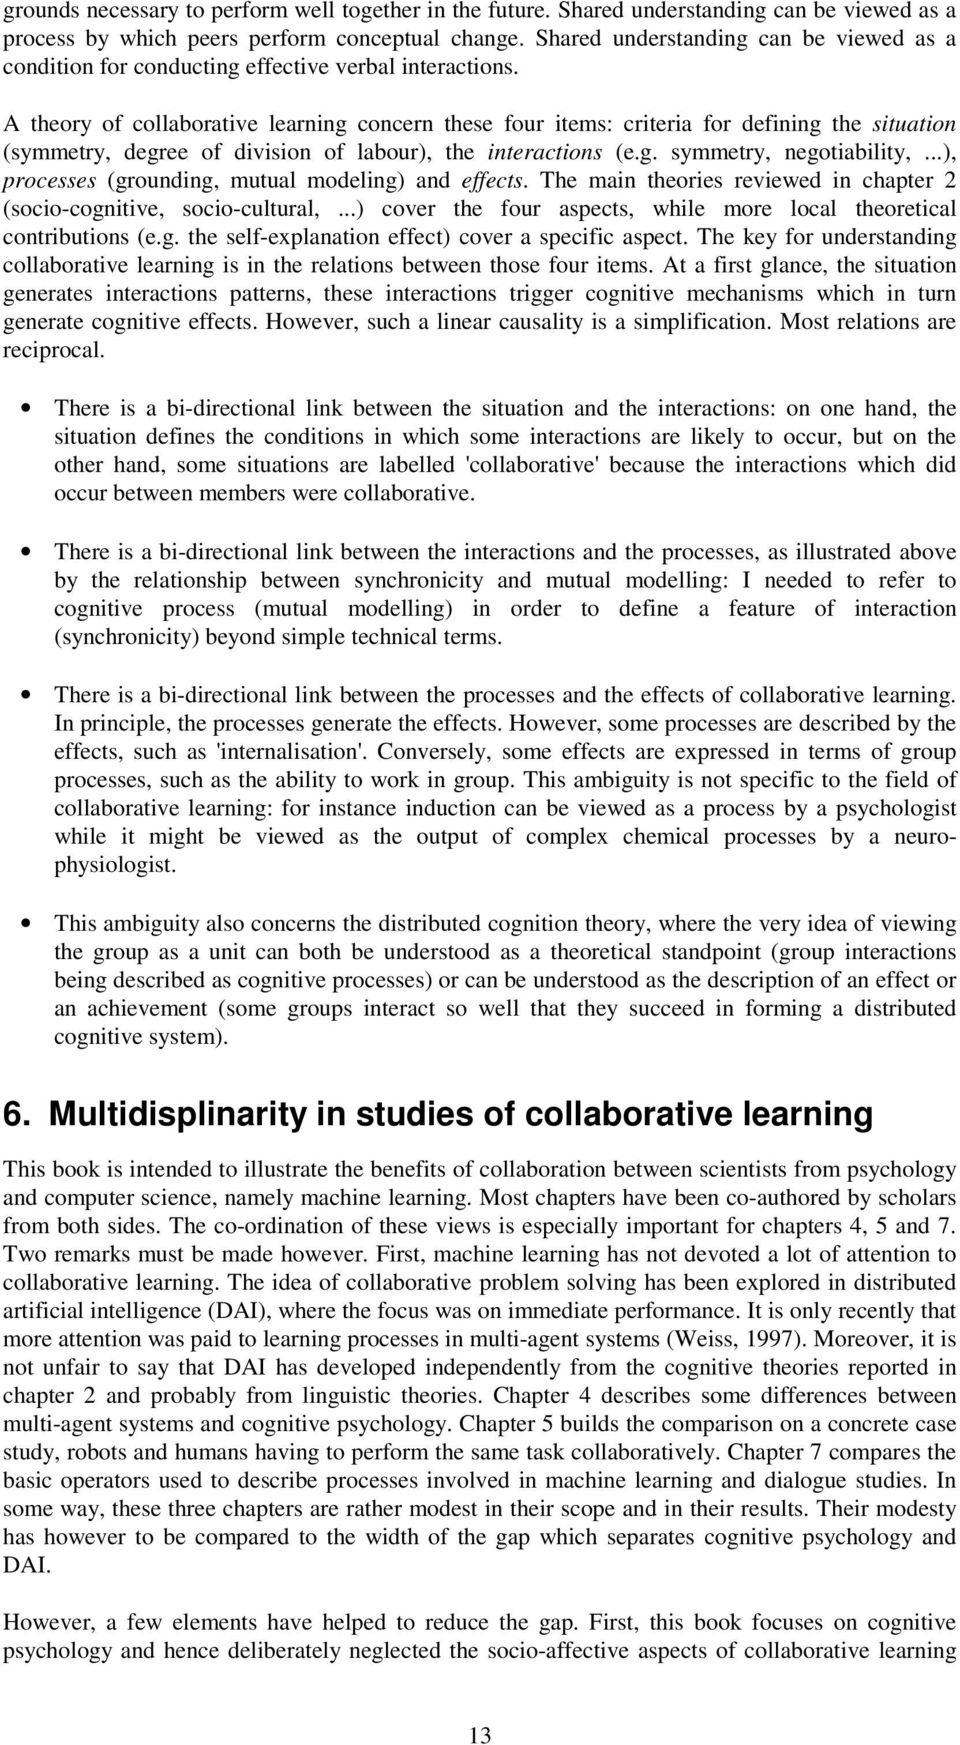 A theory of collaborative learning concern these four items: criteria for defining the situation (symmetry, degree of division of labour), the interactions (e.g. symmetry, negotiability,.